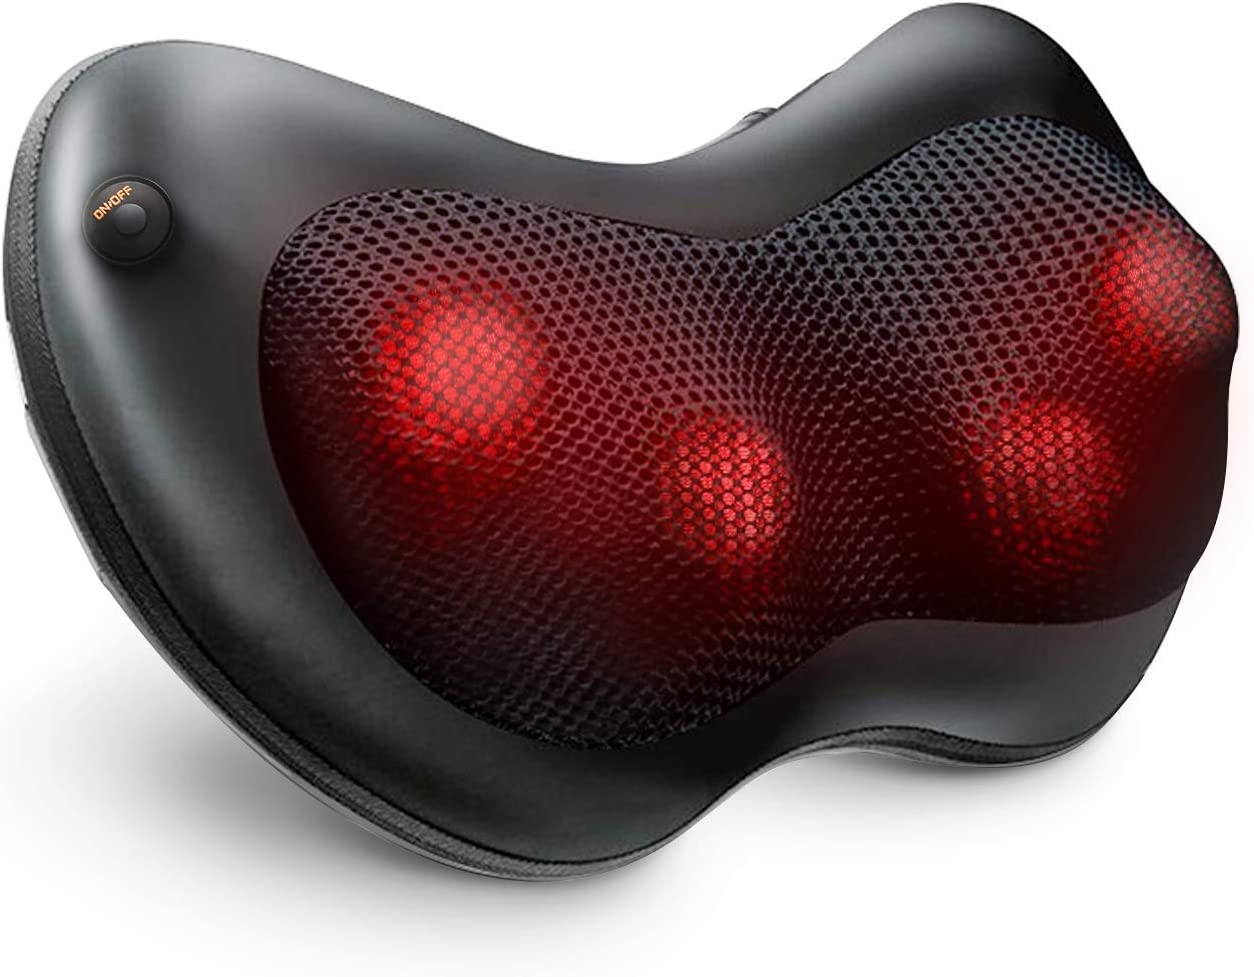 Naipo Massage Pillow Neck Back Massager with Heat, Shiatsu Deep Kneading for Shoulder Leg Foot and Full Body Pain Relief, Stress Relax at Home Office and Car - Black